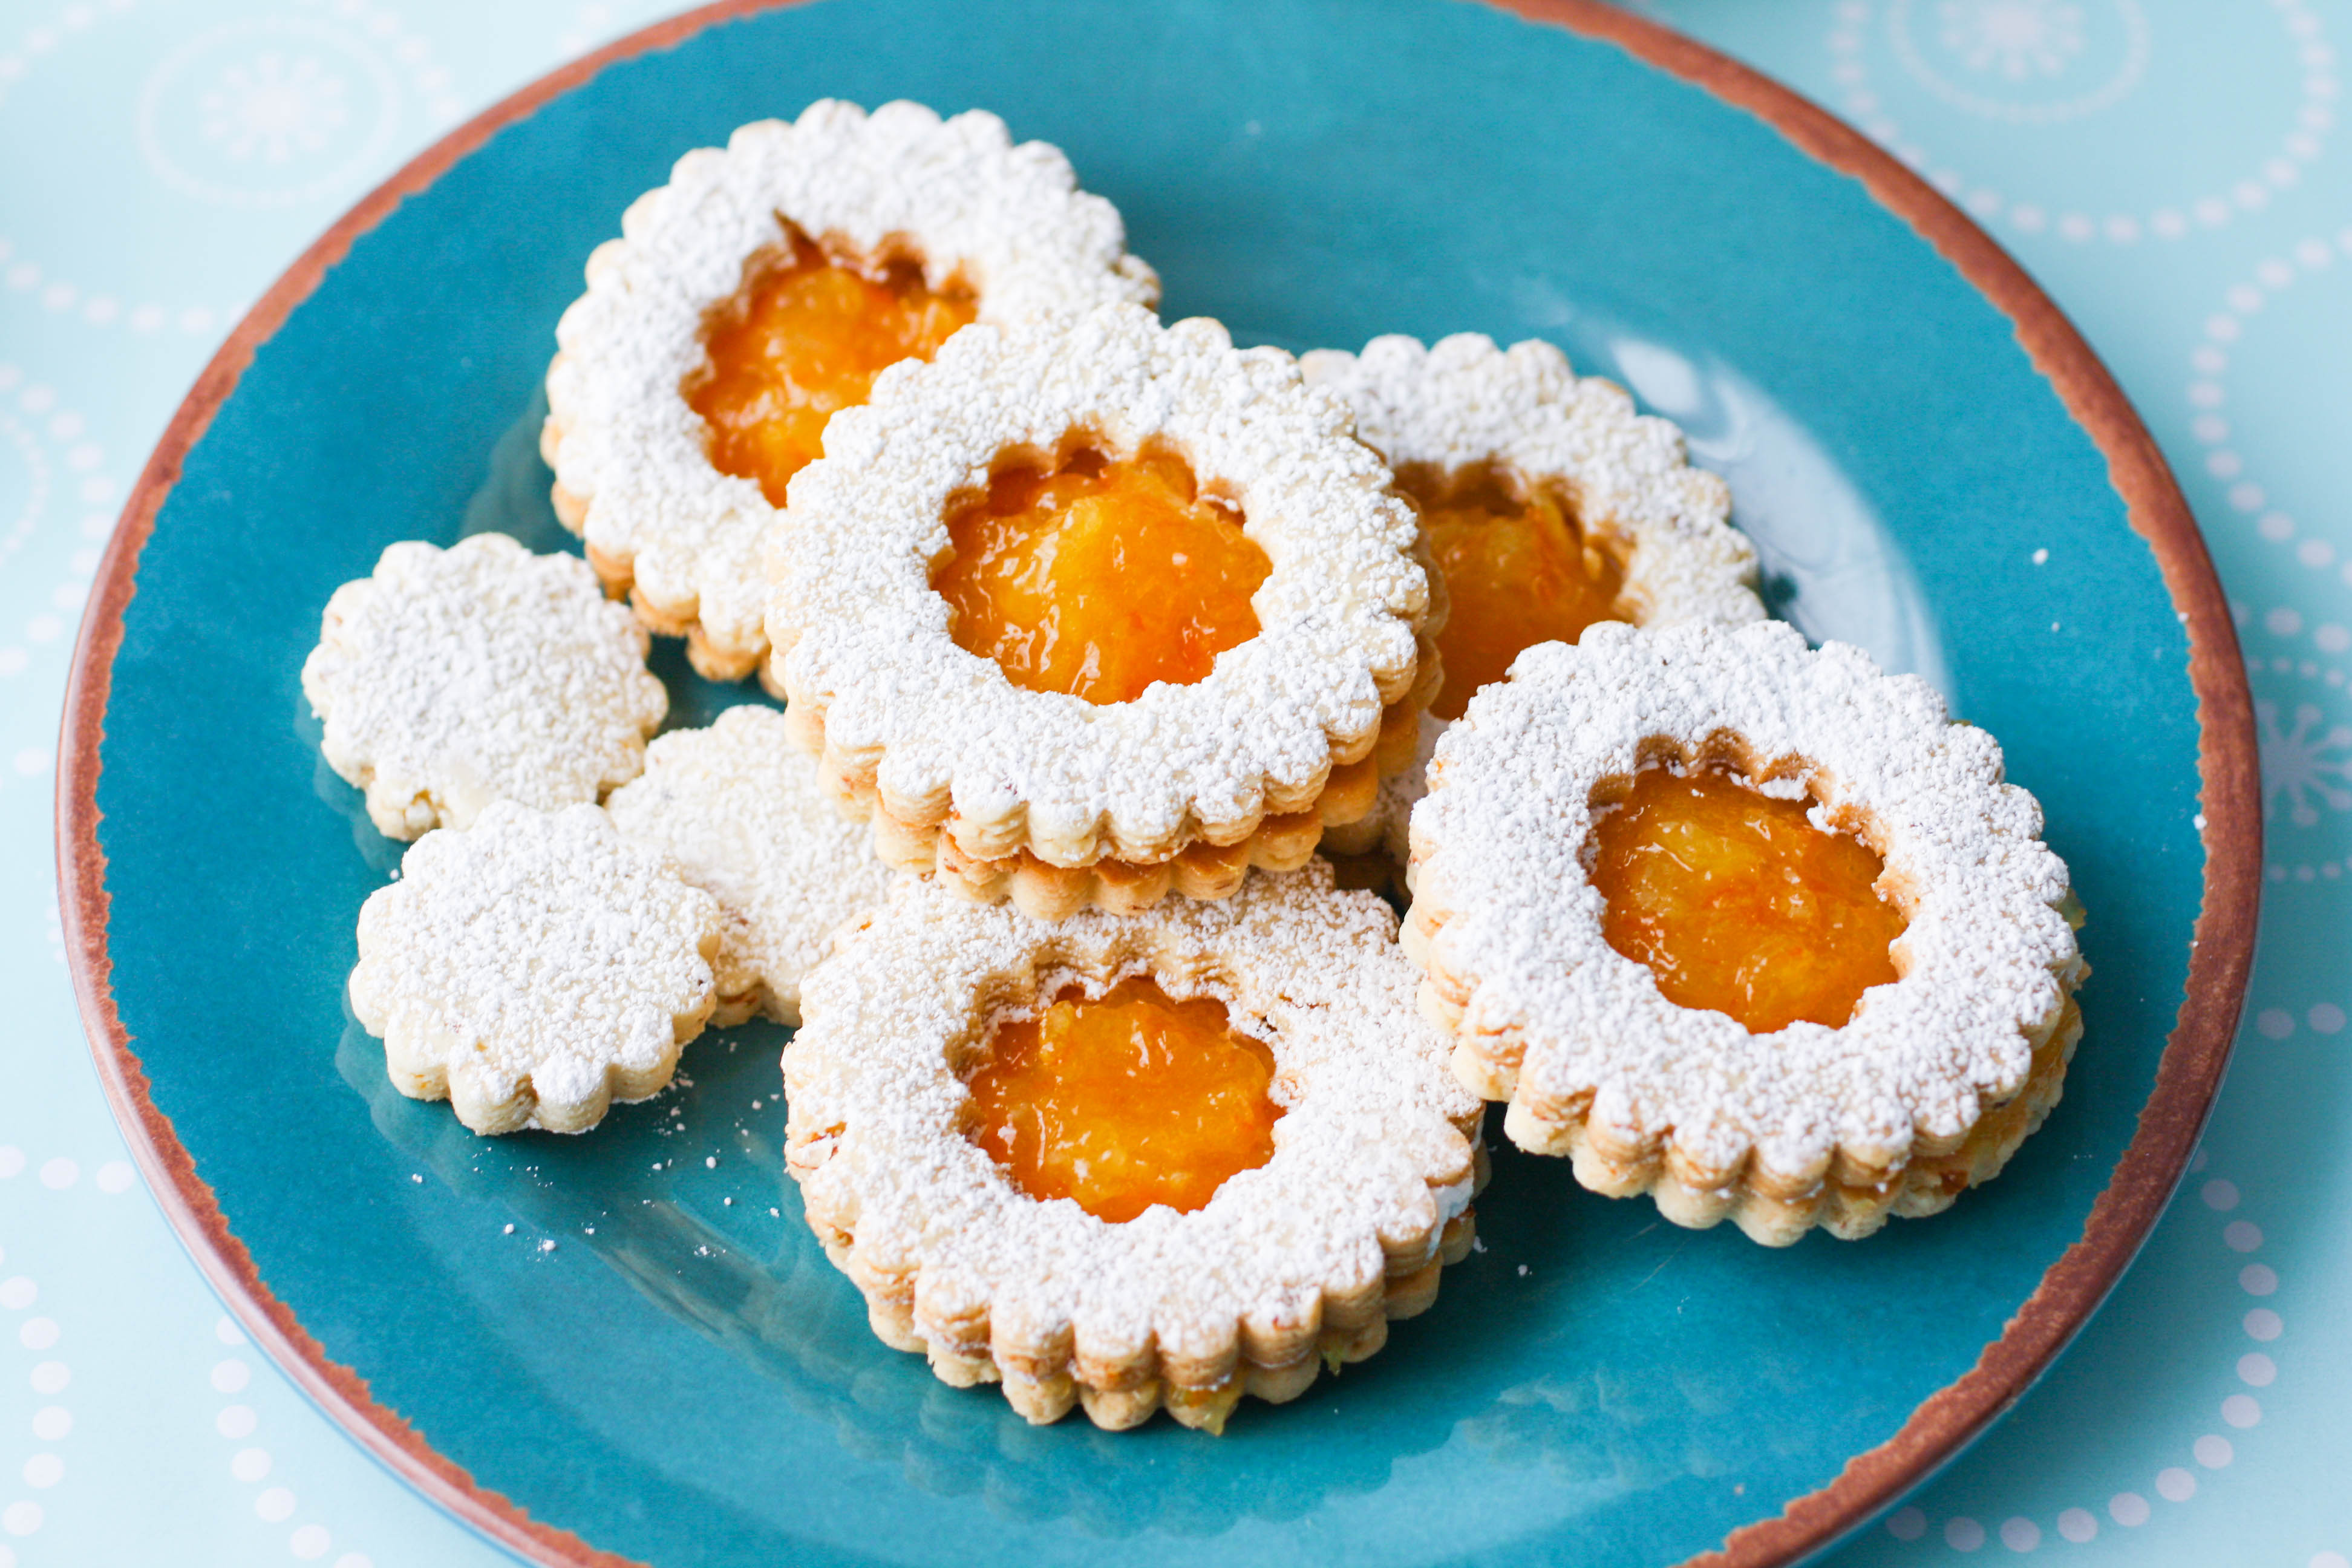 Linzer Cookies with Homemade Orange Marmalade are quite a treat for the season. You'll enjoy making and eating these lovely linzer cookies!